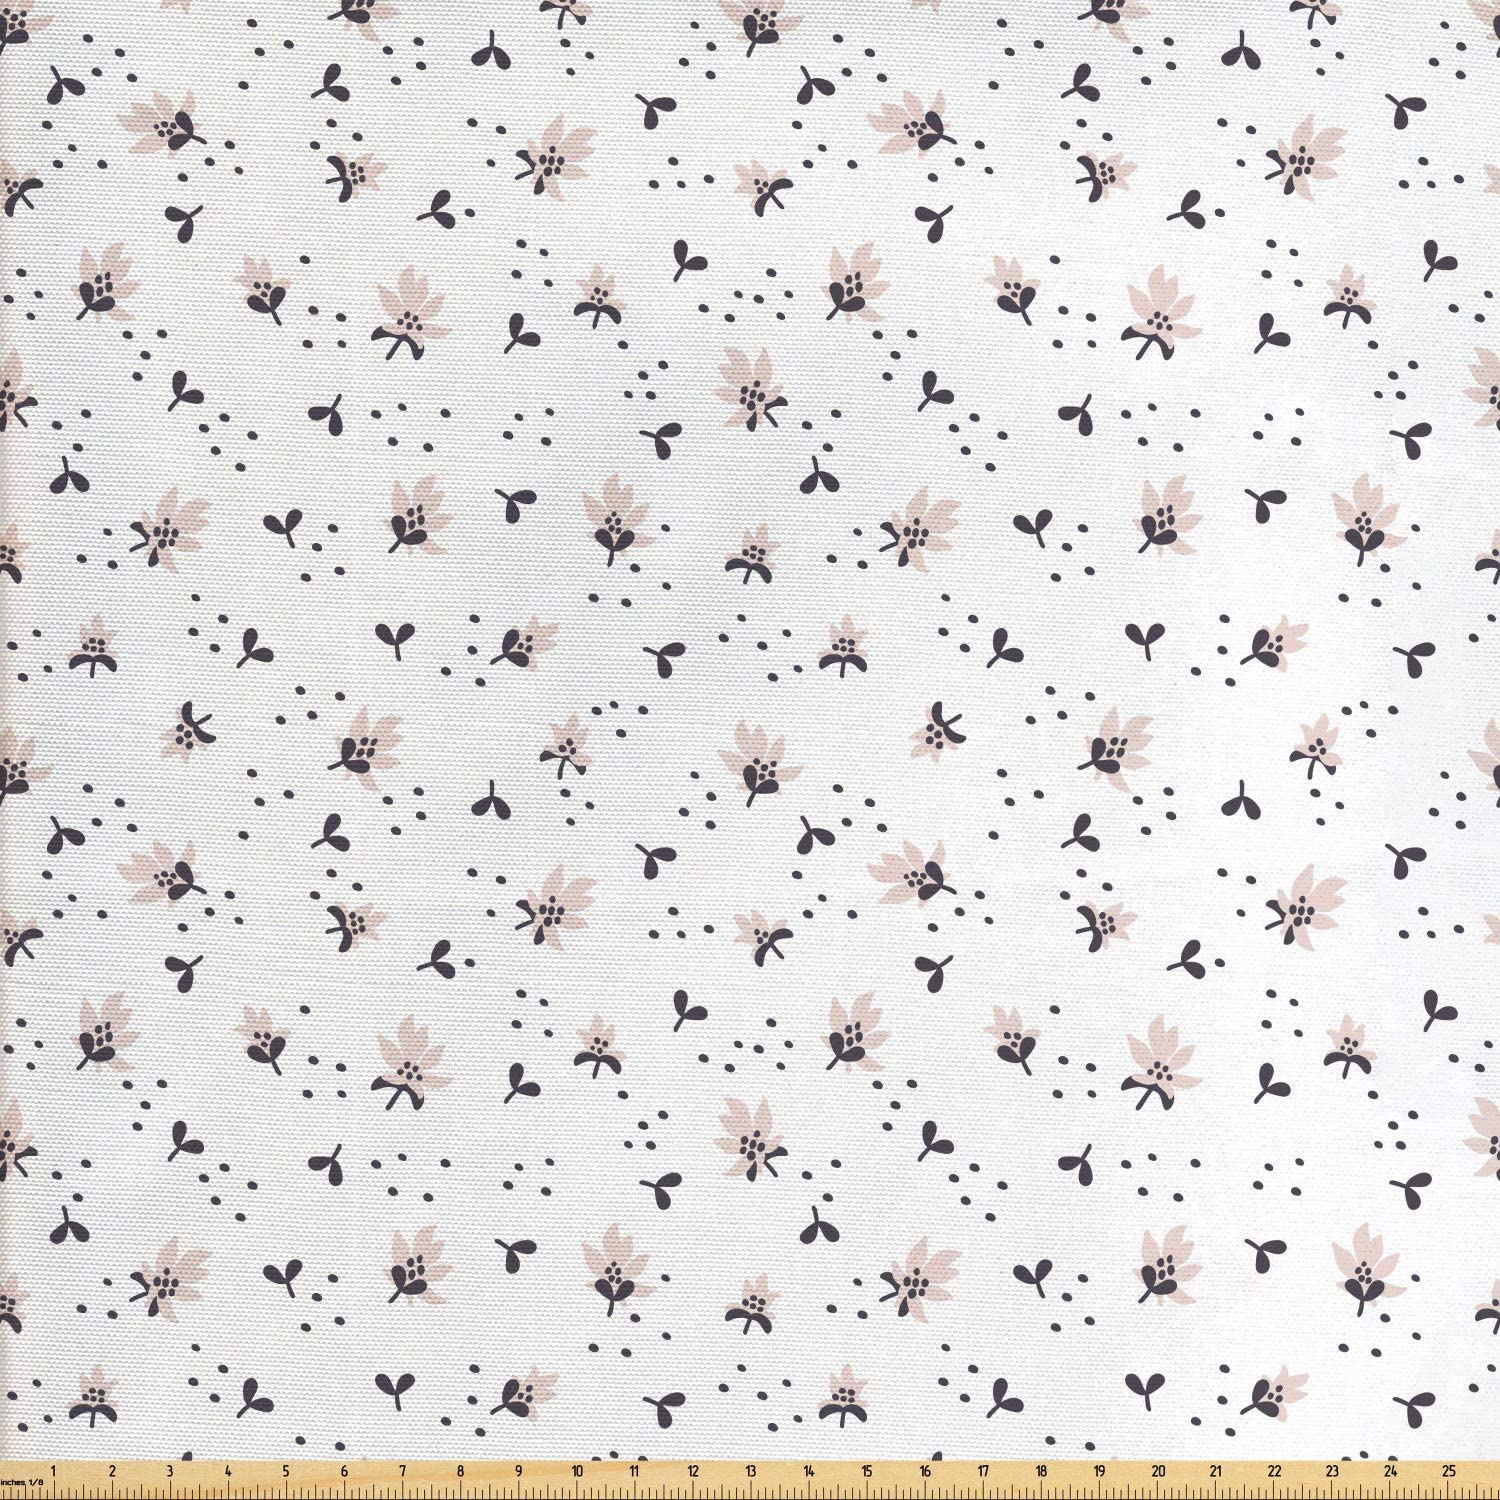 Ambesonne Jasmine Fabric by The Yard, Pastel Simplistic Spring Art with Abstract Flowers Leaves and Dots, Decorative Fabric for Upholstery and Home Accents, 1 Yard, White Purple Grey